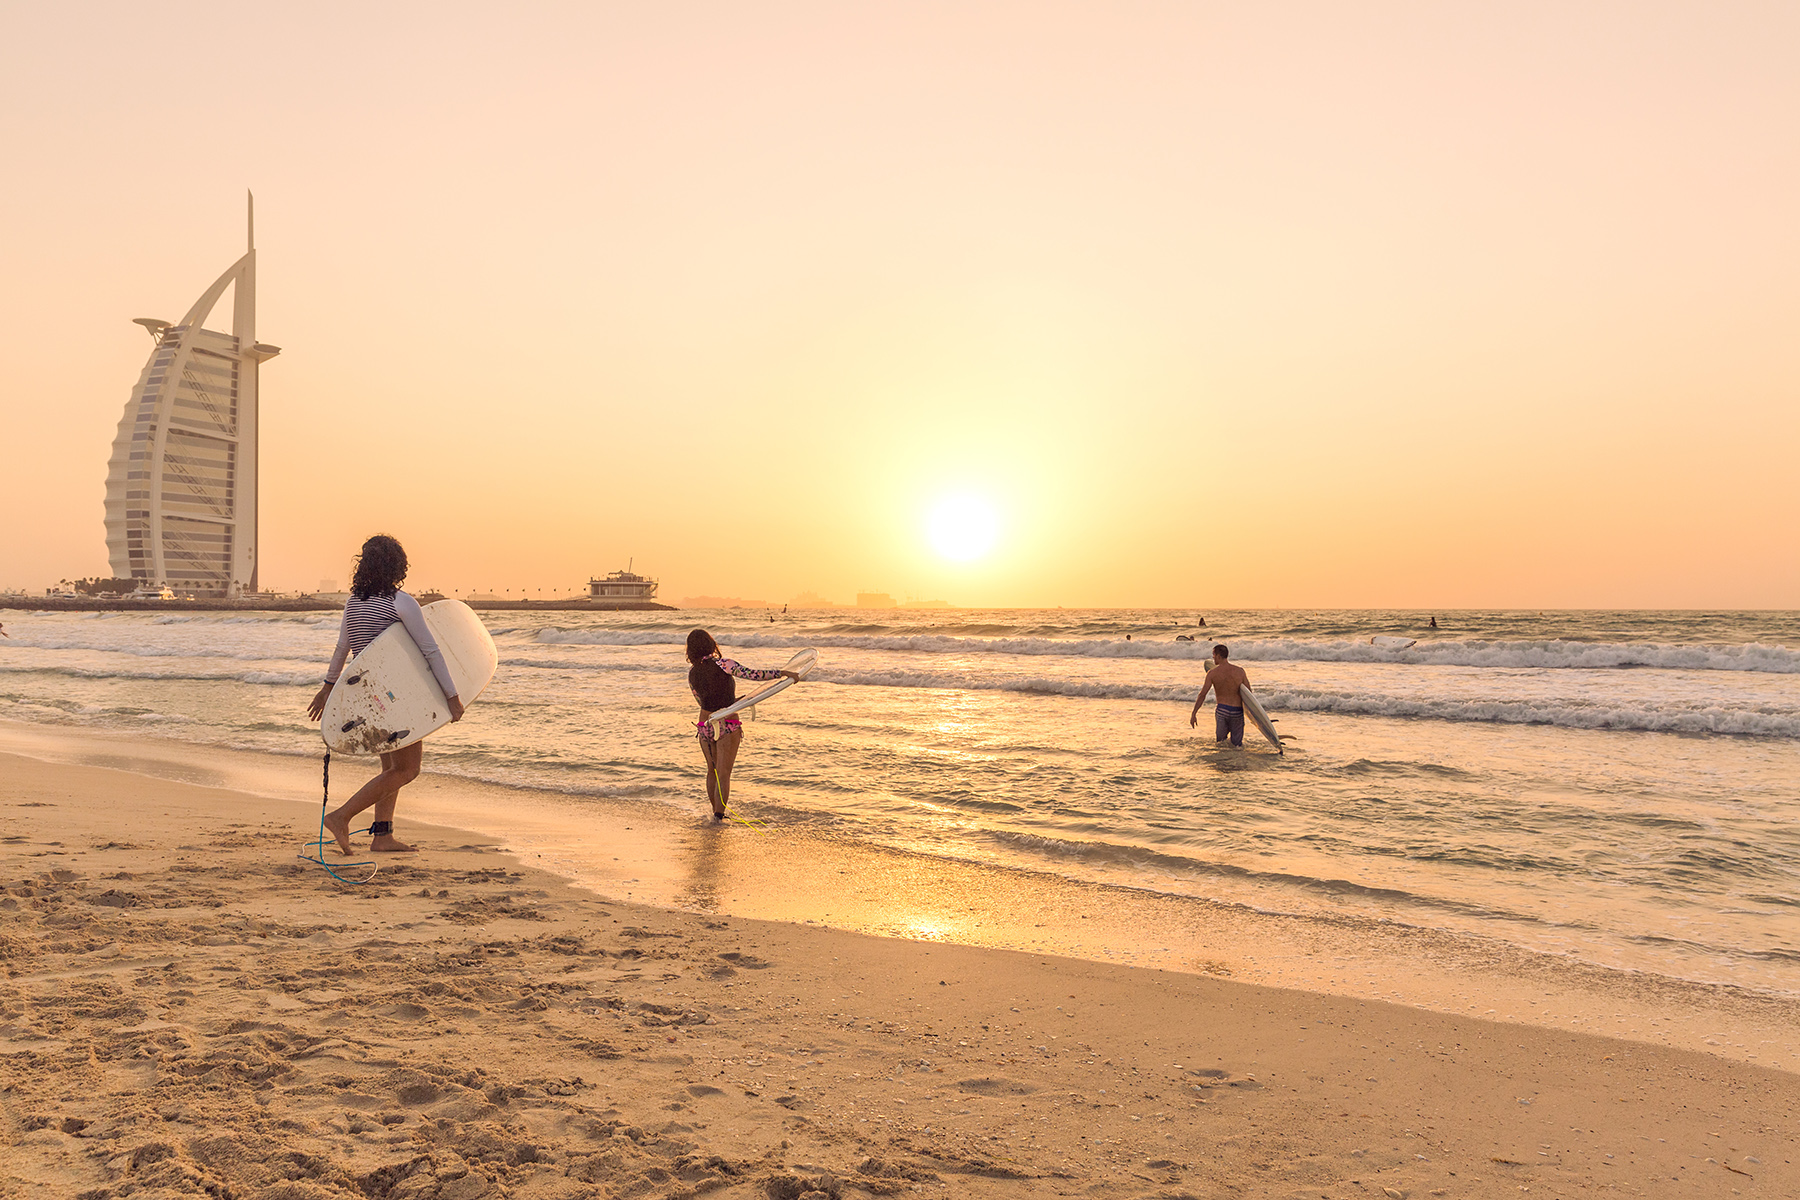 Surfers at sunset in Dubai